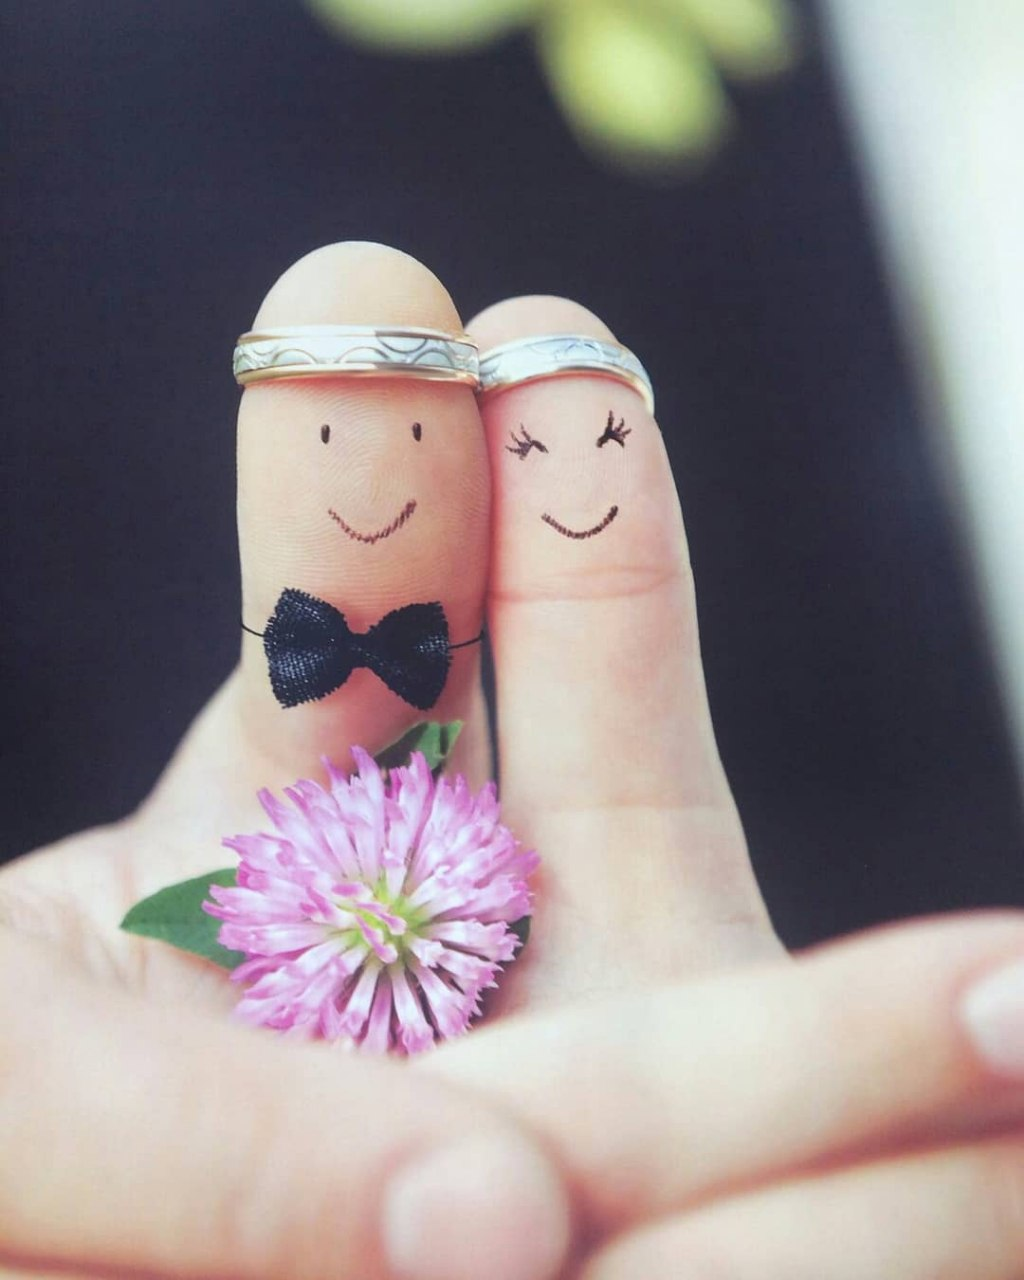 cute couple dolls images for facebook cover photo